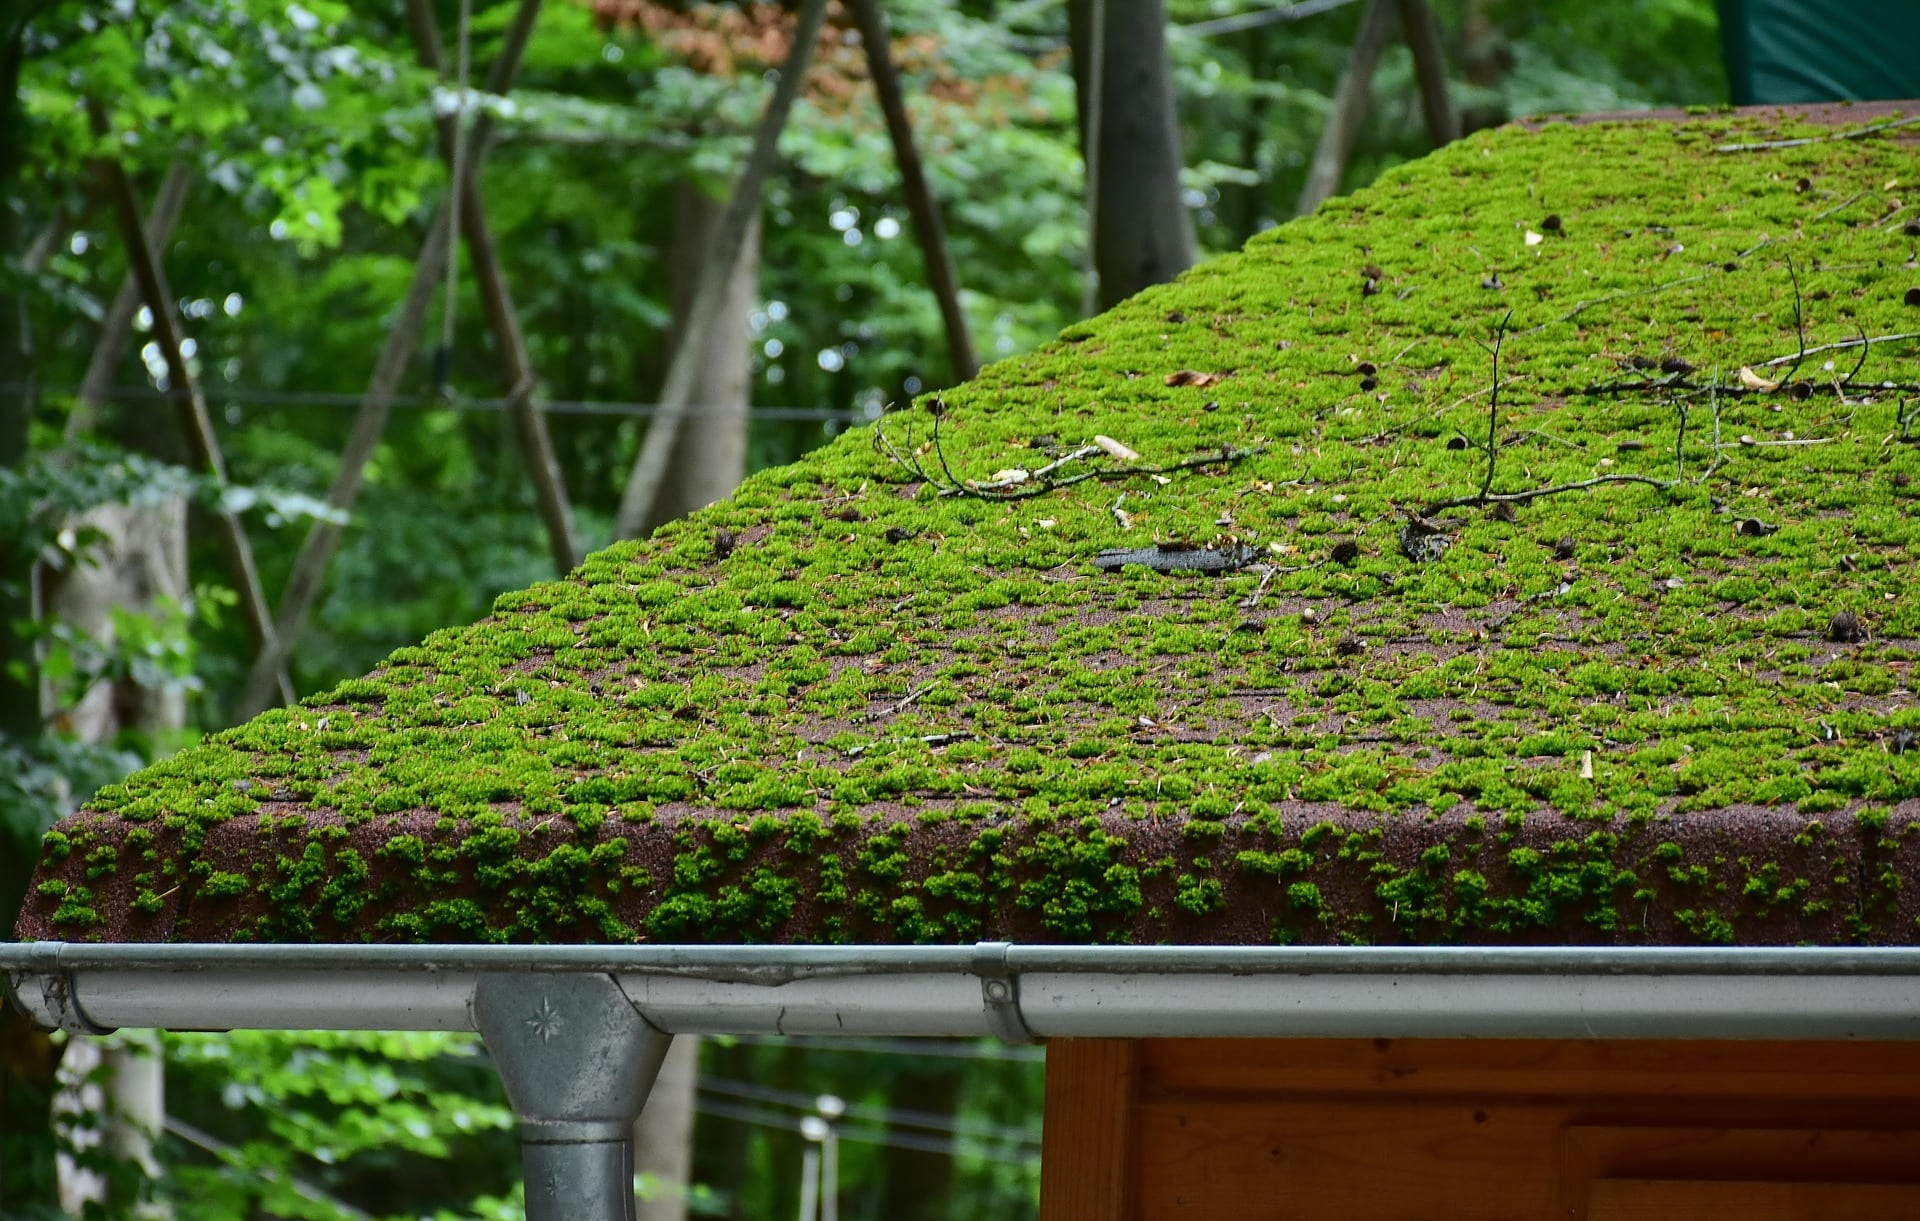 Extreme example of moss on roof damaging the integrity and causing leaks